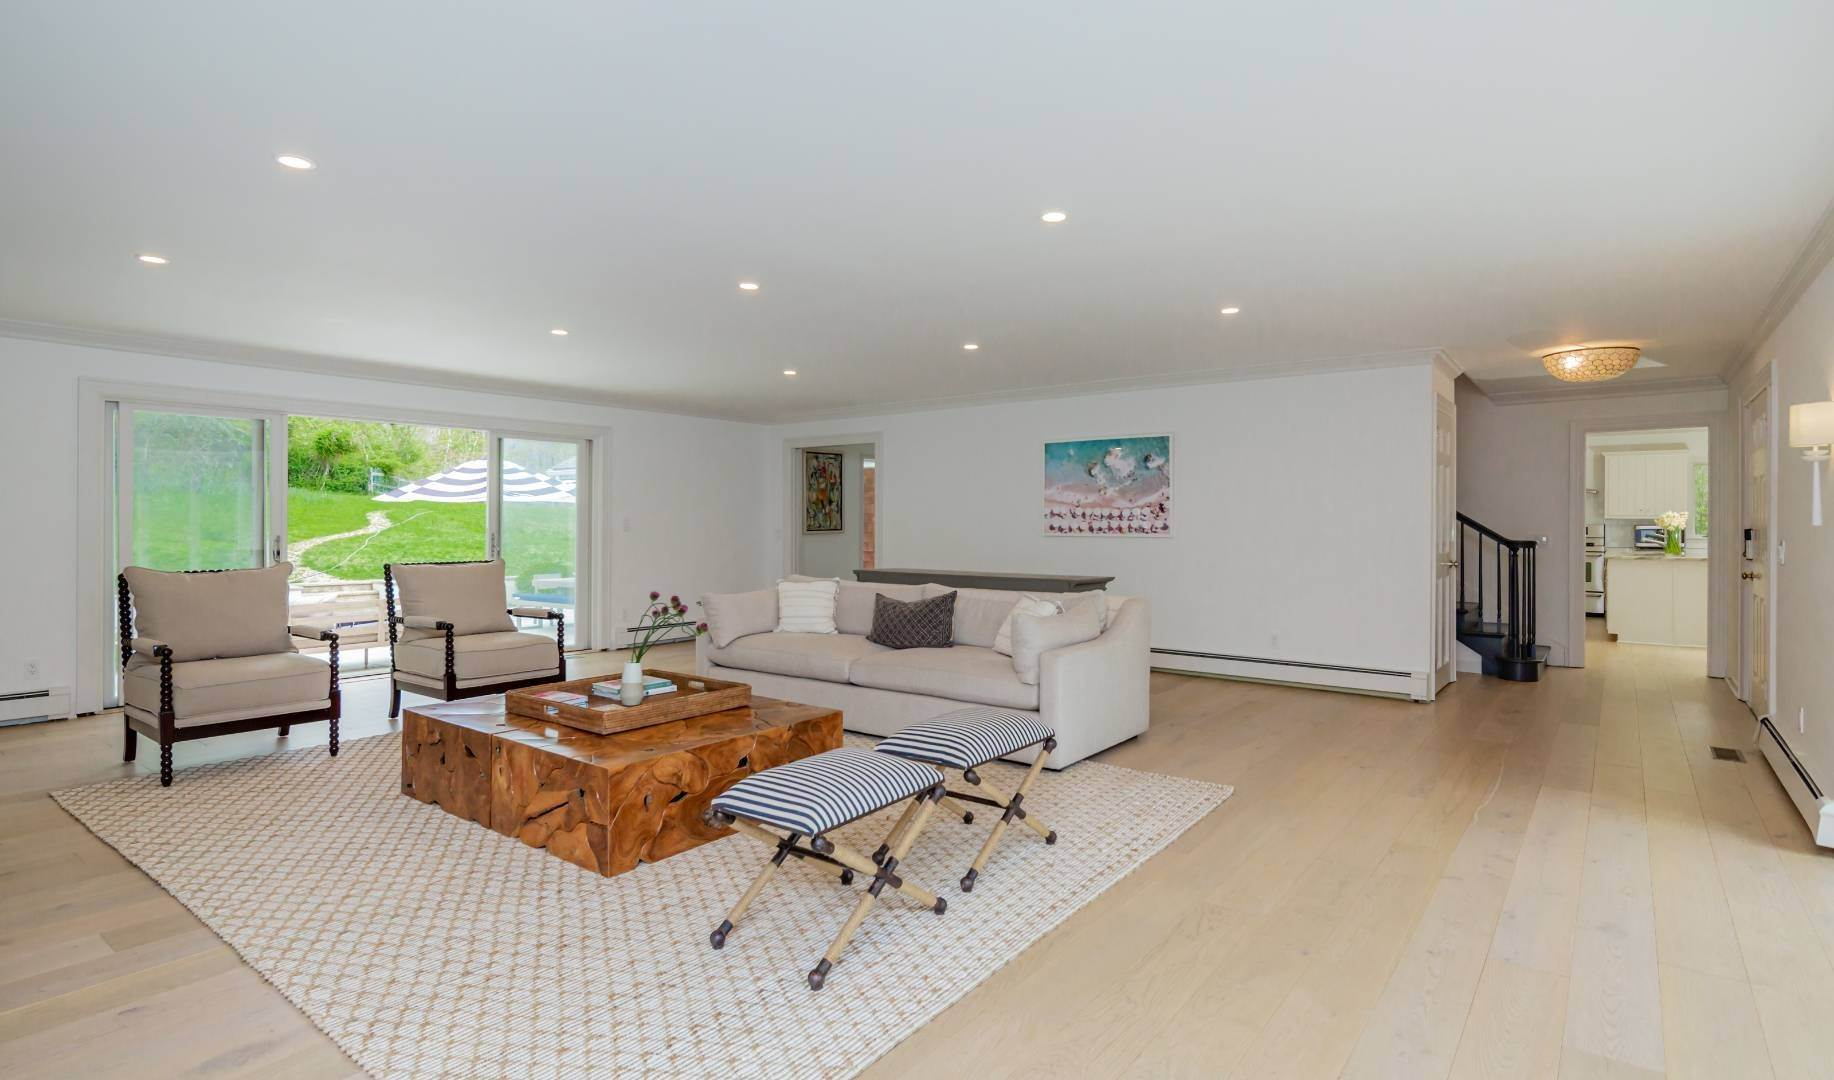 Single Family Home for Sale at Resort Style Property With New Modern Interiors- 2 Miles To Shv 241 Edge Of Woods Road, Southampton, NY 11968